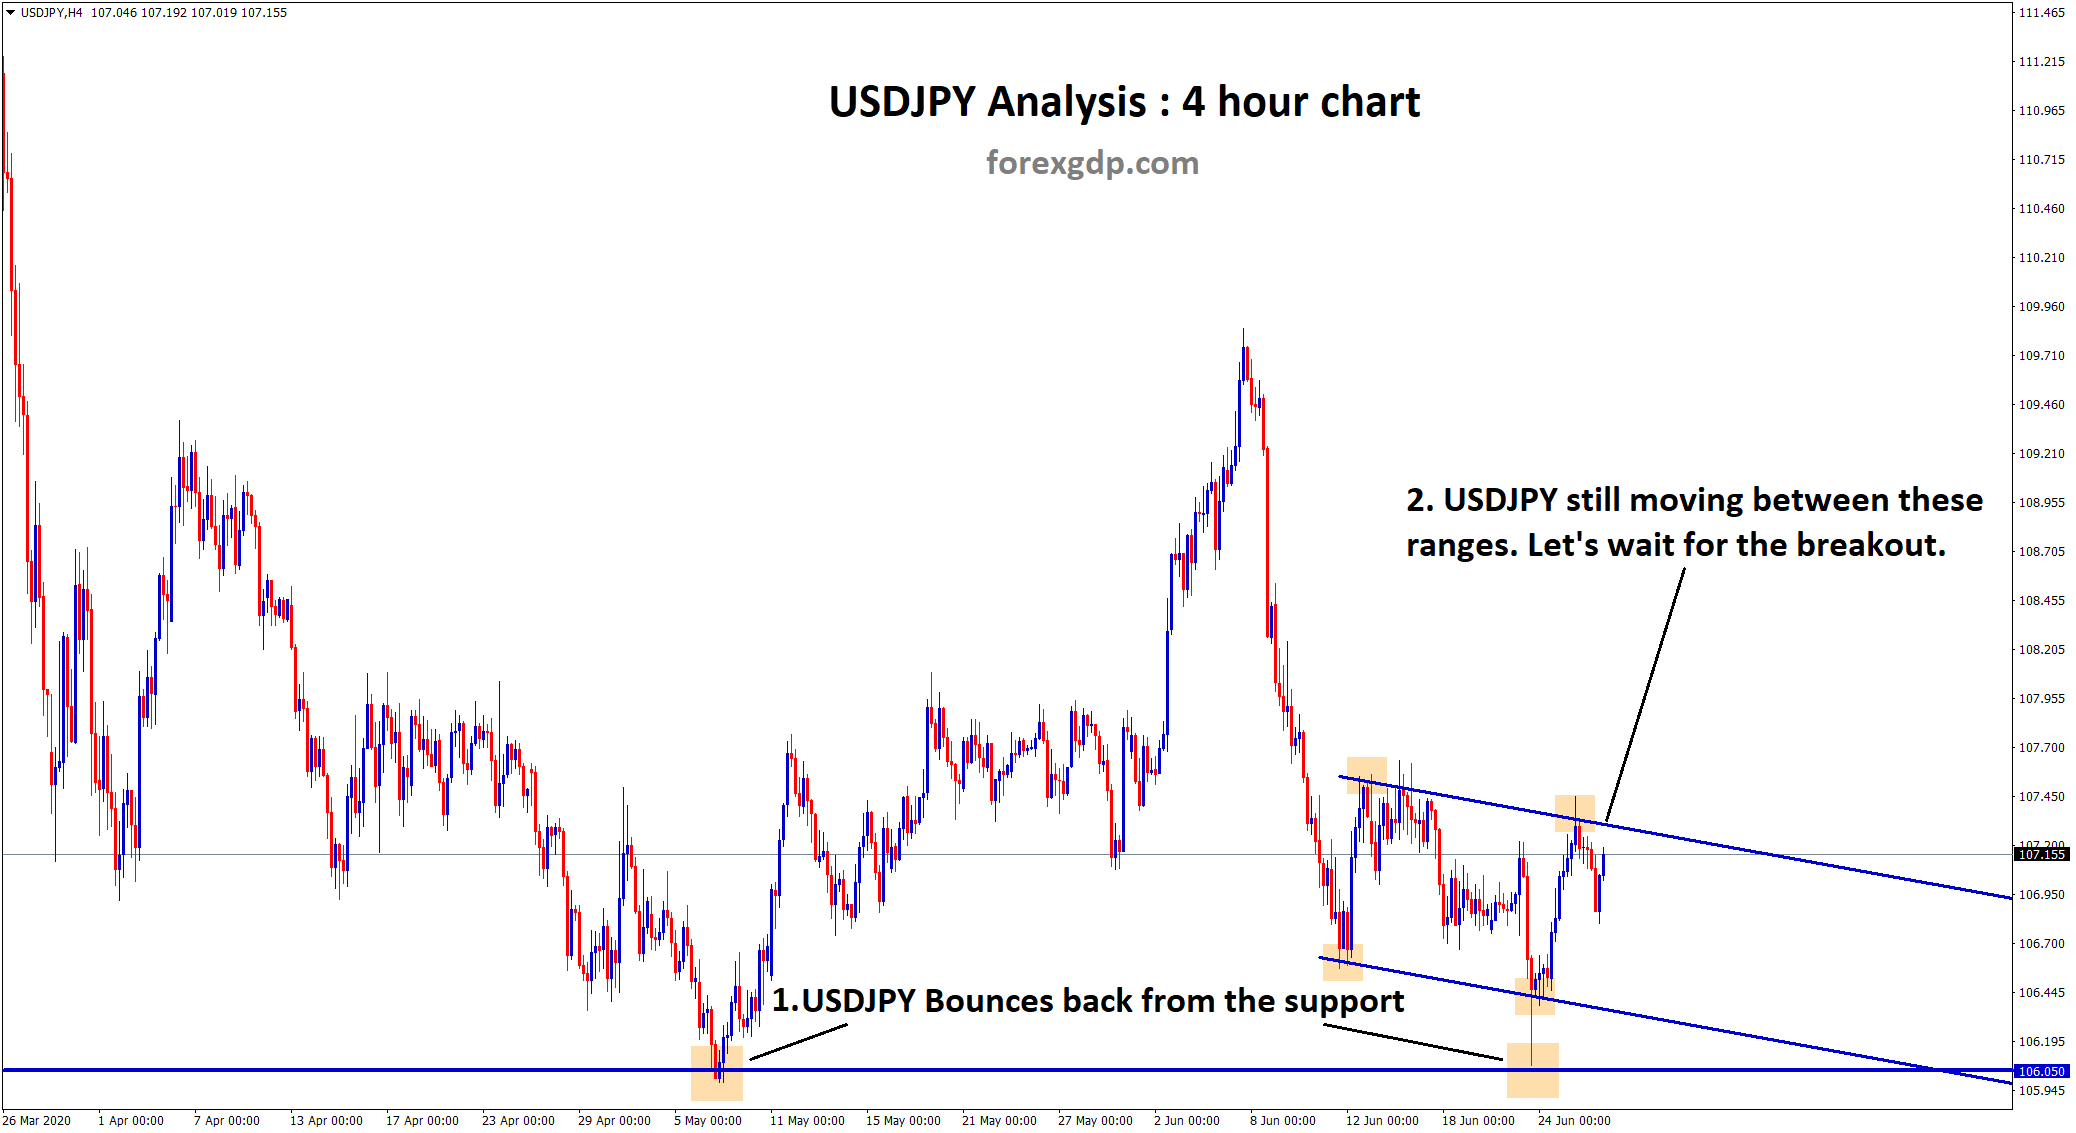 USDJPY waiting for breakout from the range in h4